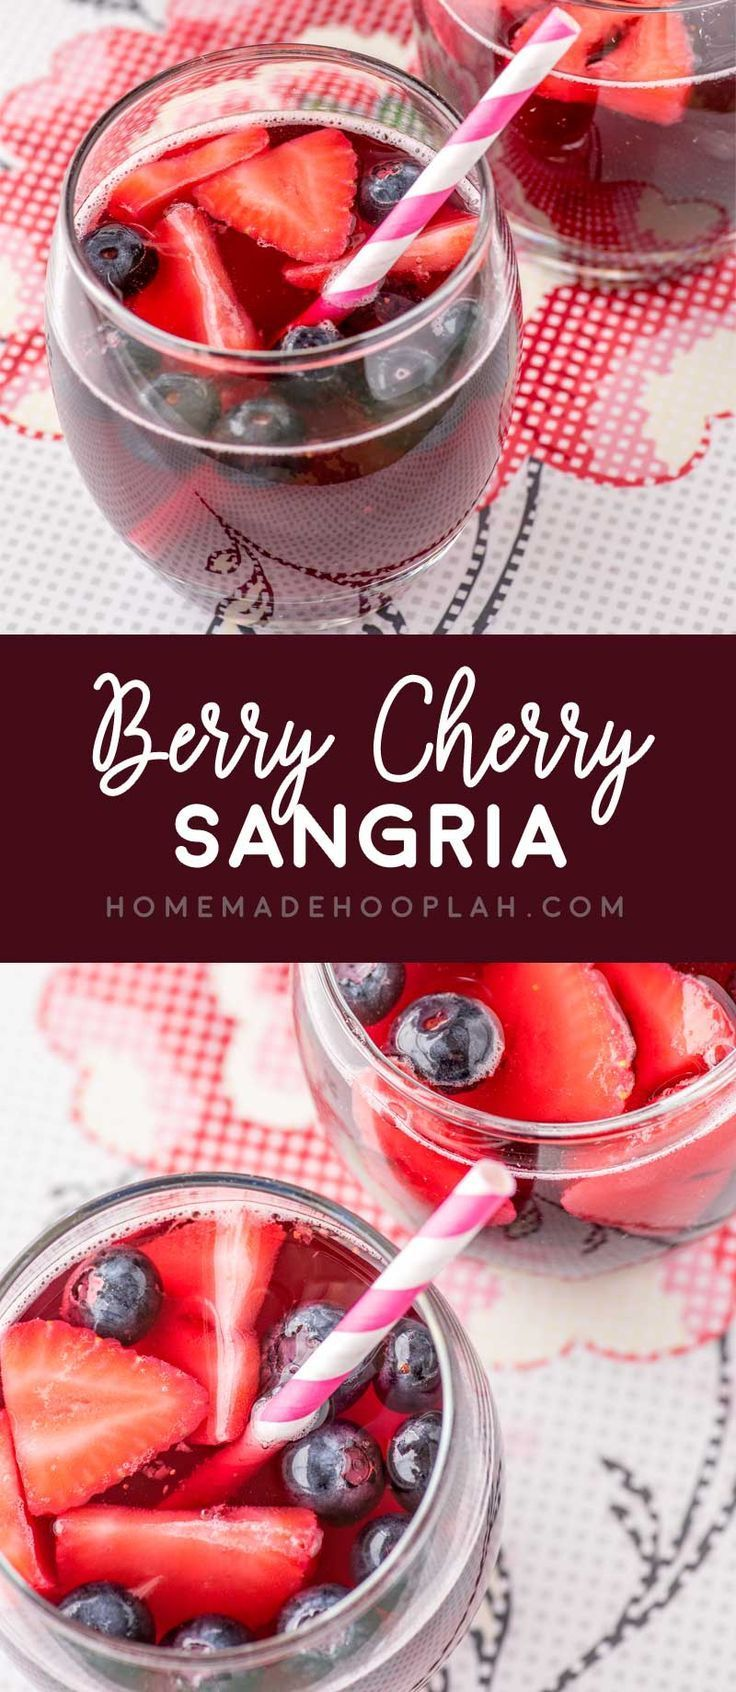 Berry Cherry Sangria Fresh Cherries Strawberries And Blueberries Are Soaked In Brandy Easy Sangria Recipes Summer Sangria Recipes Christmas Sangria Recipes